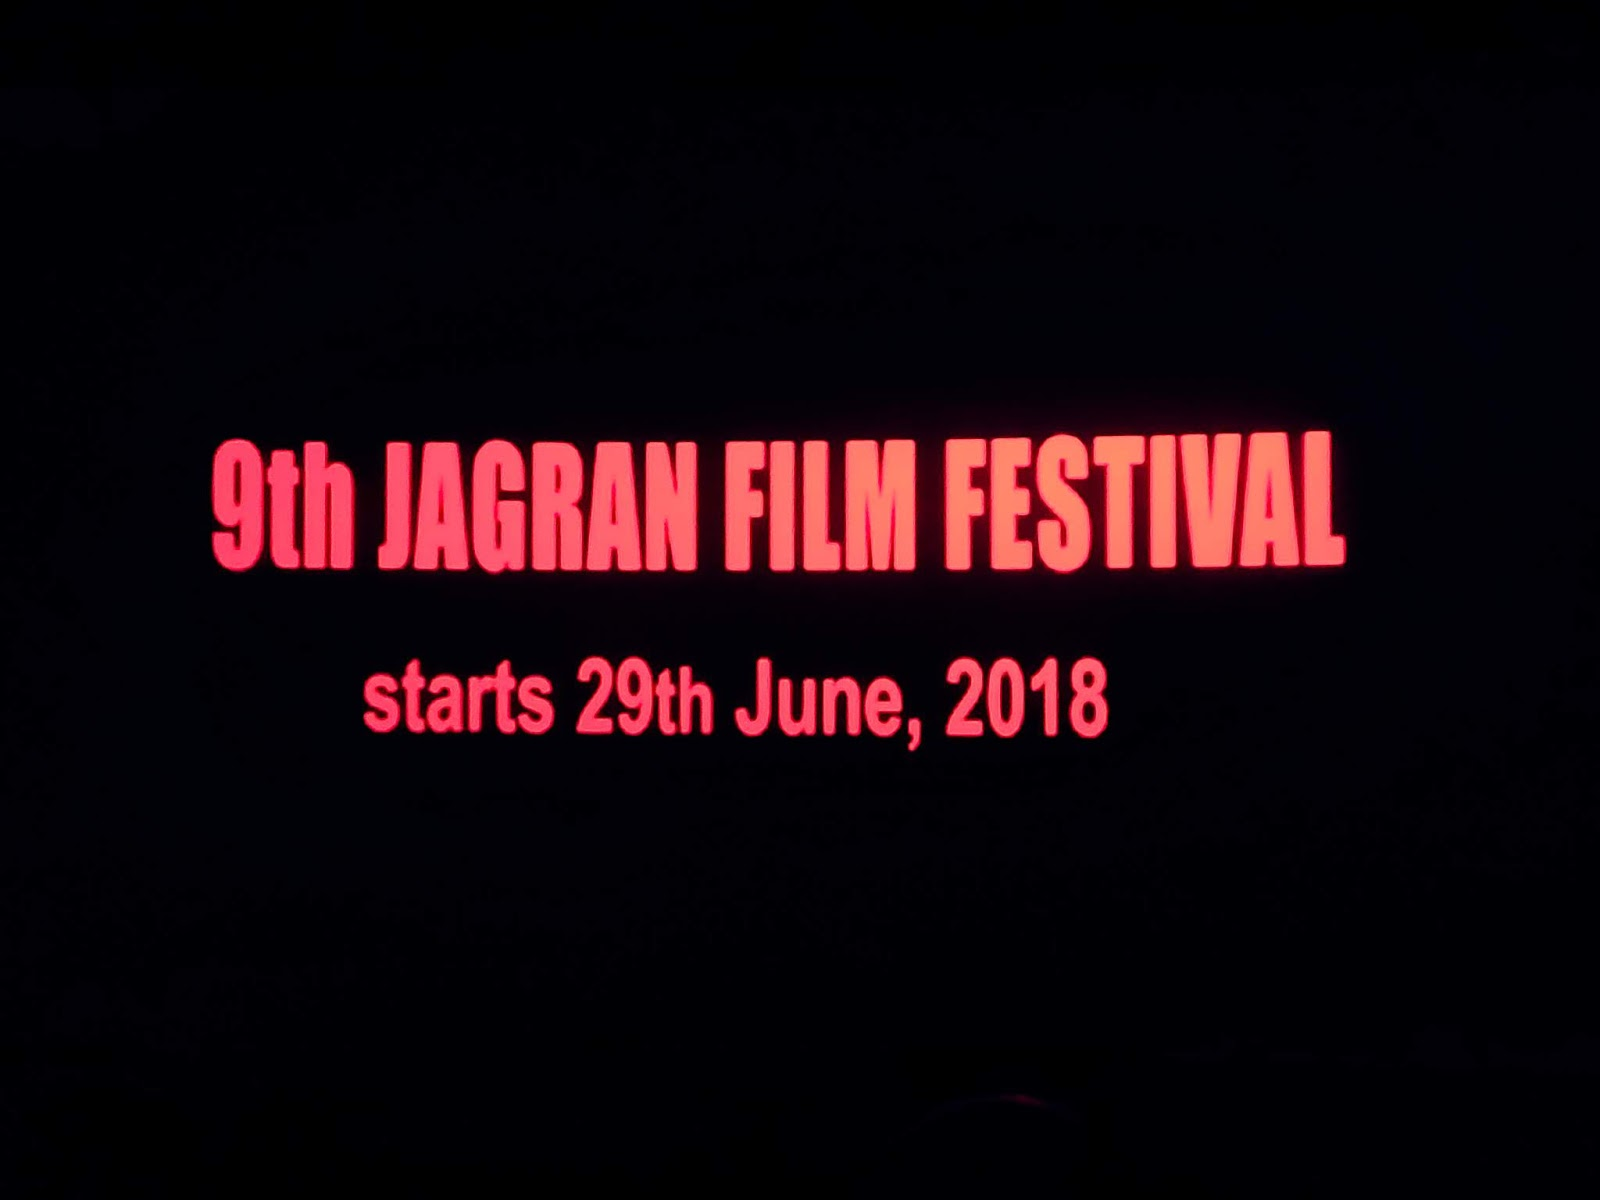 9th Jagran Film Festival 2018 | JFF - 29th June